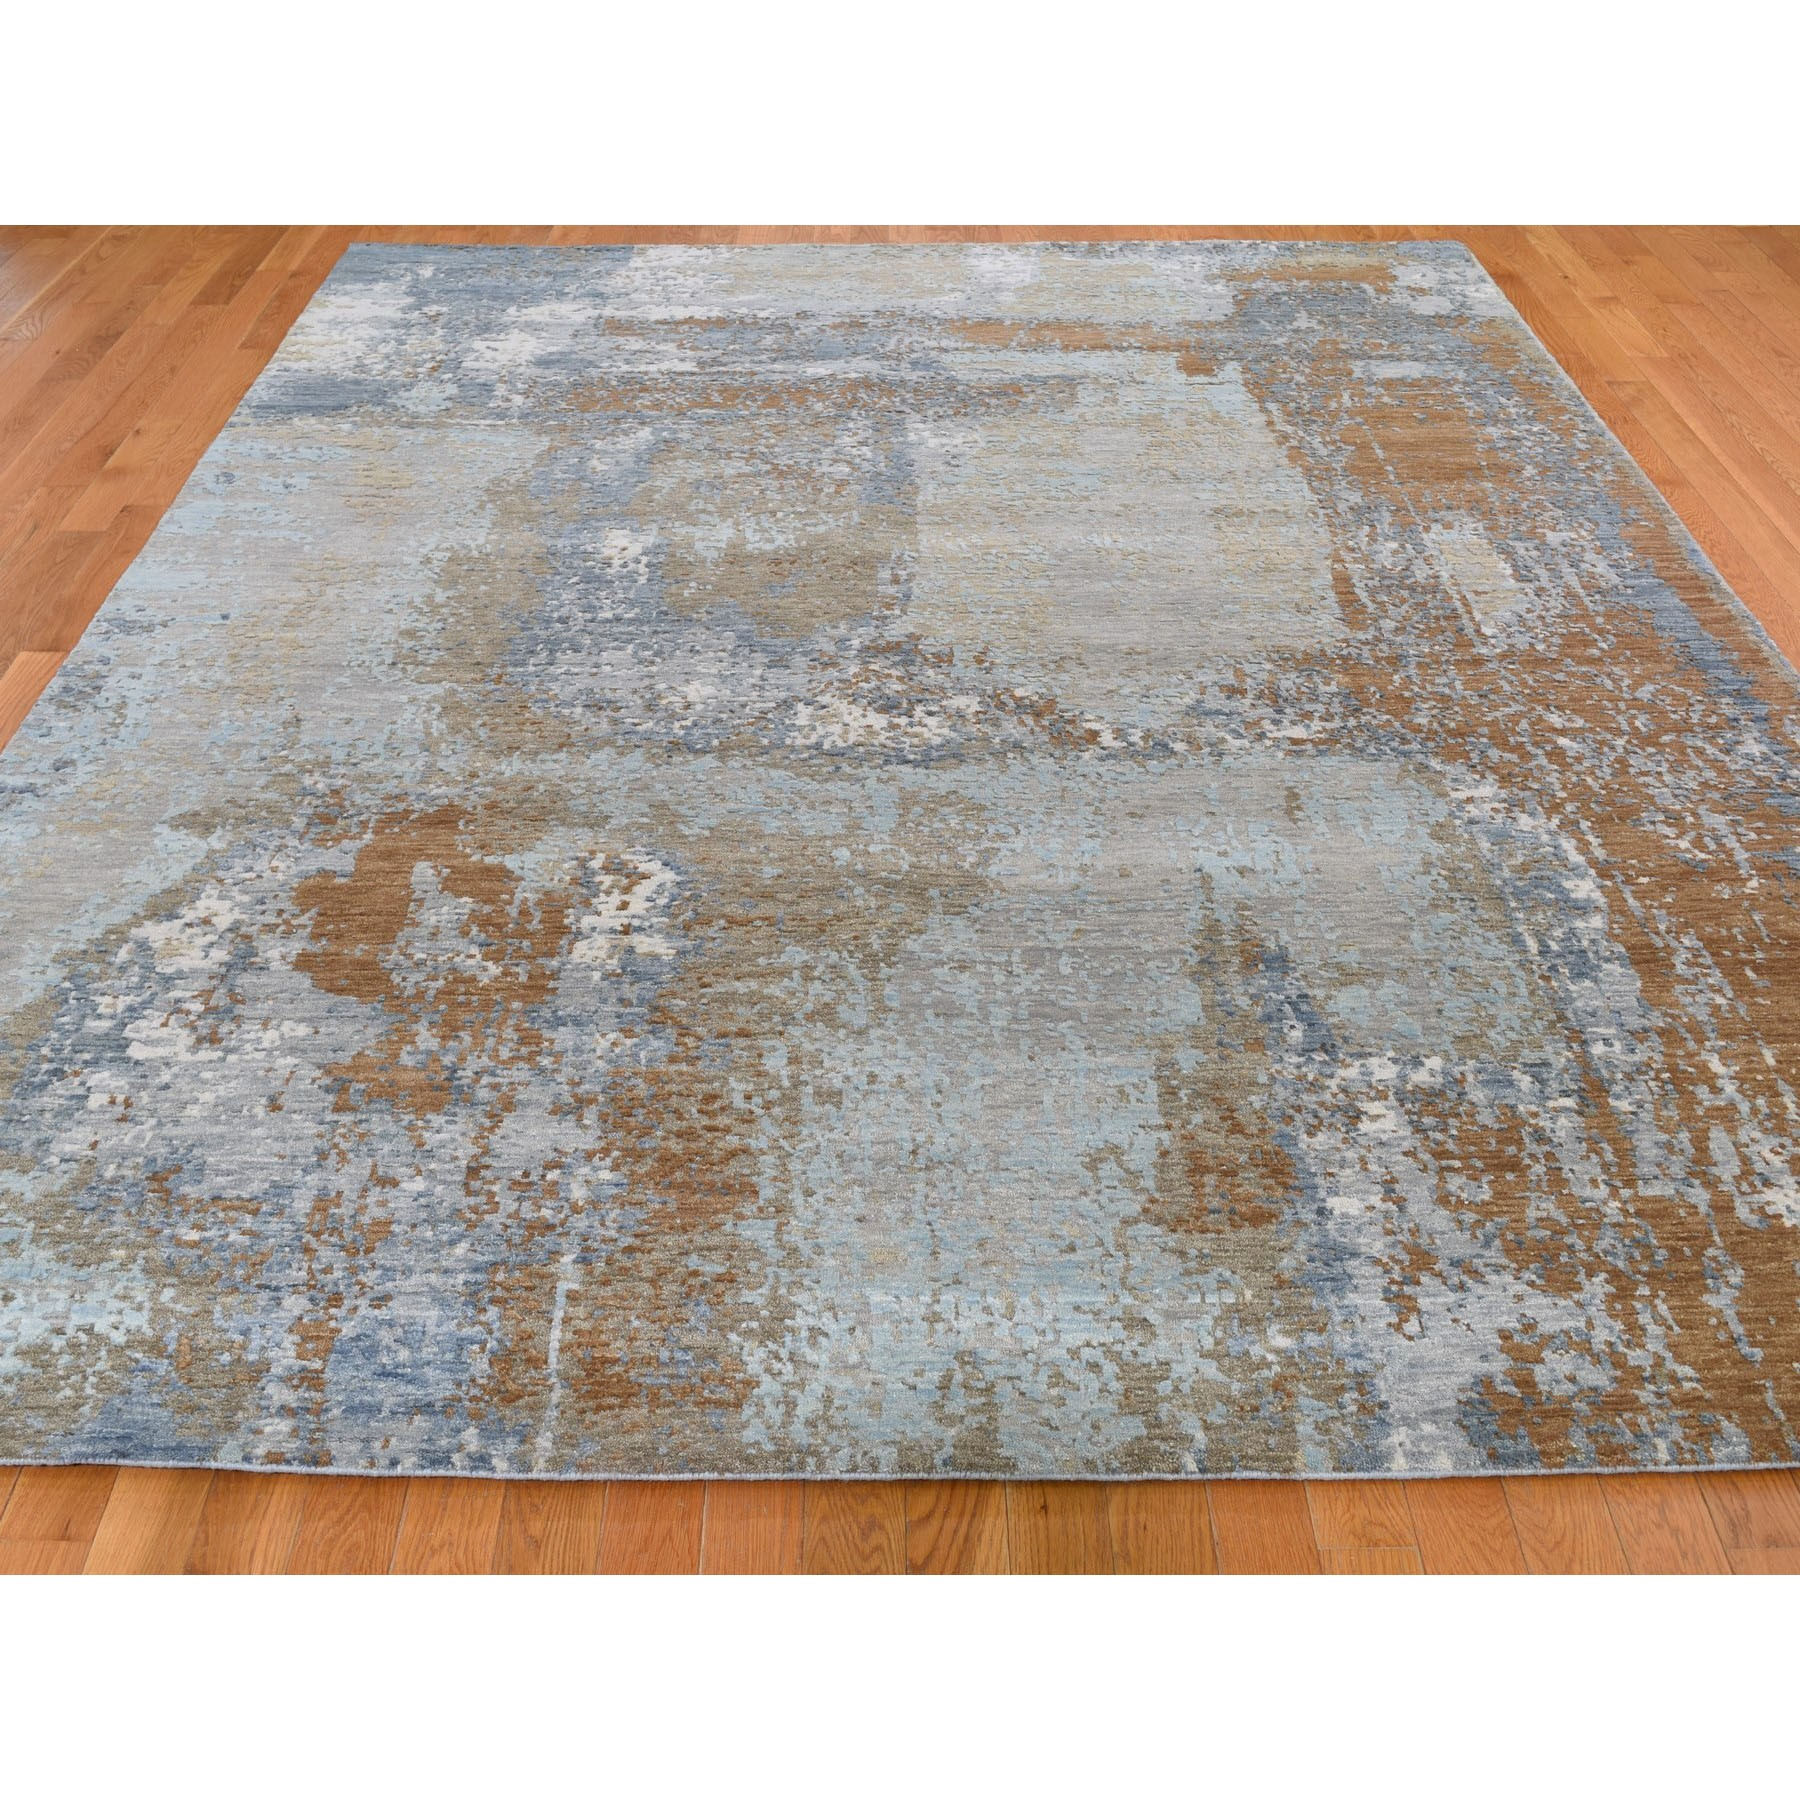 8-x10- Honey Brown Abstract Design Wool and Silk Tight Knot Hand Knotted Oriental Rug